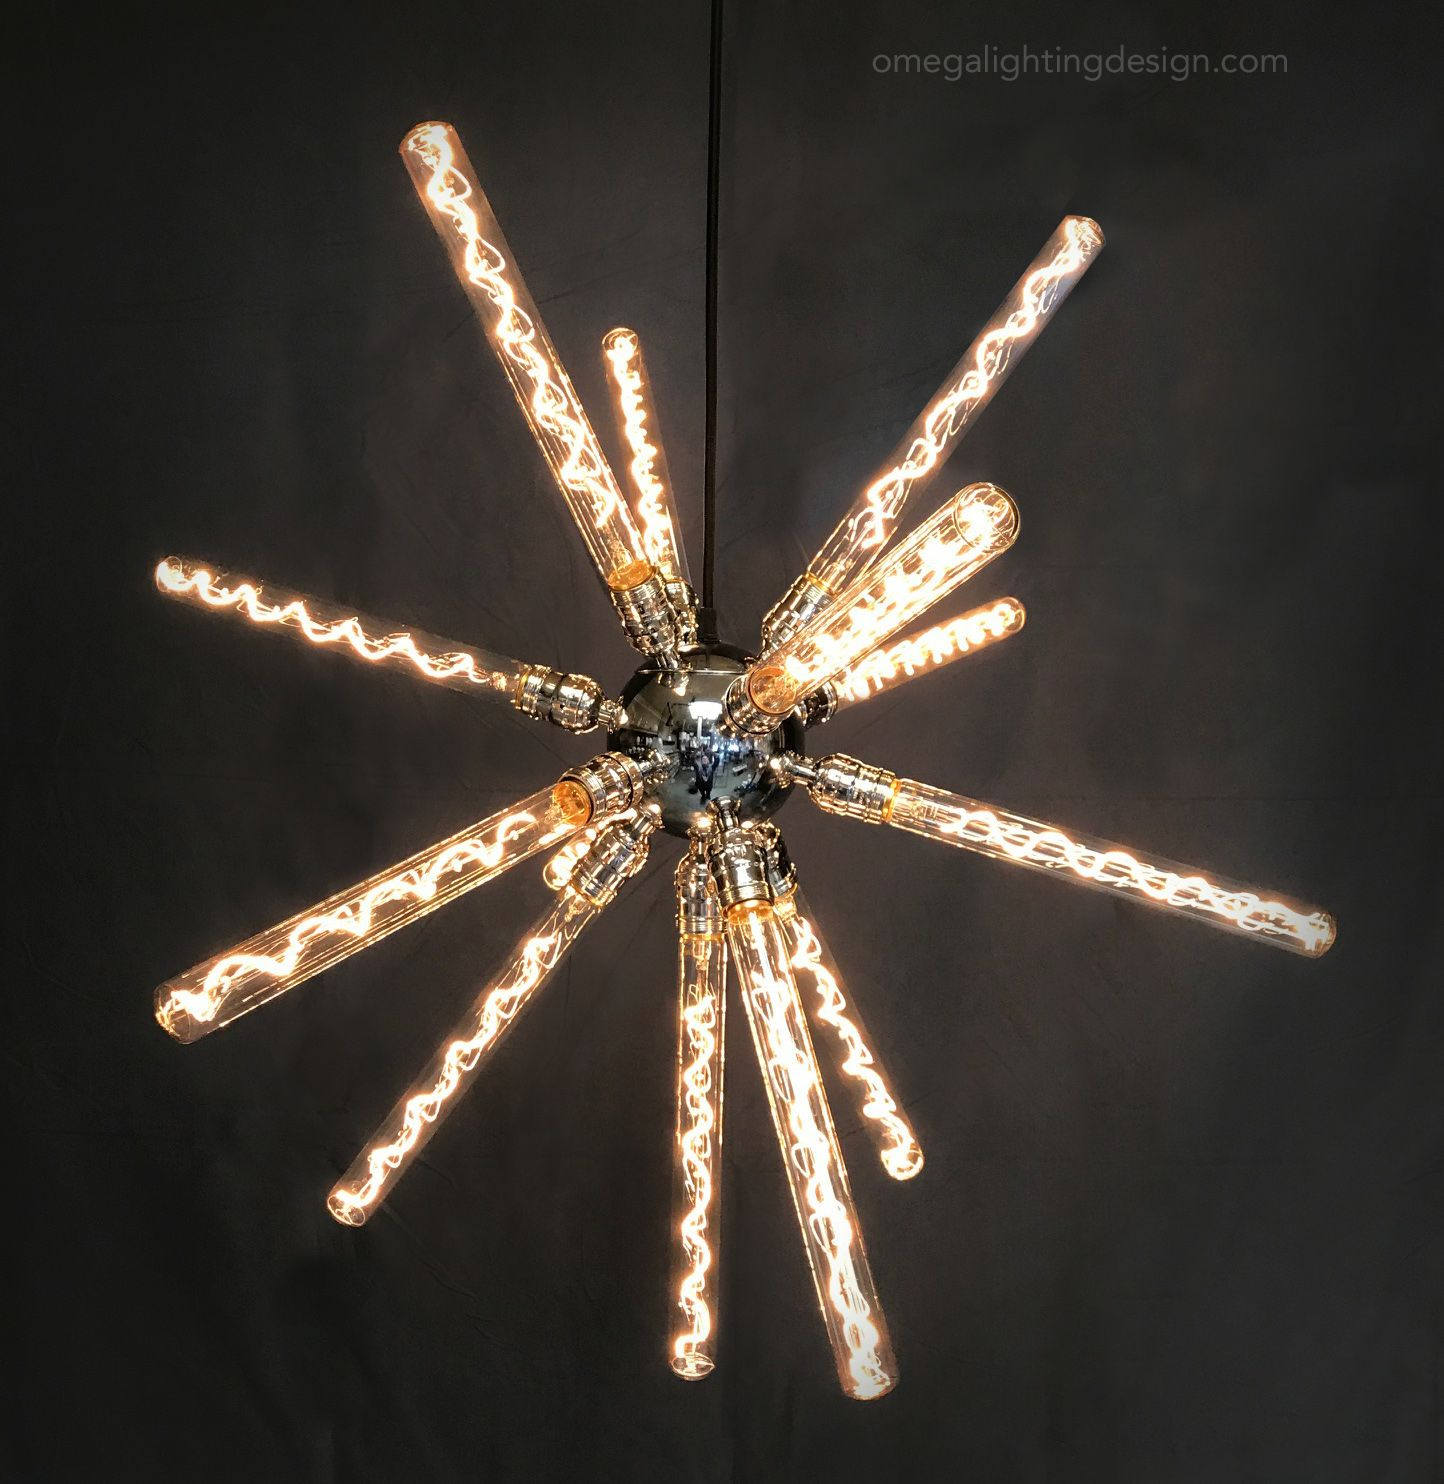 Omega Lighting Berkeley | Lighting Ideas